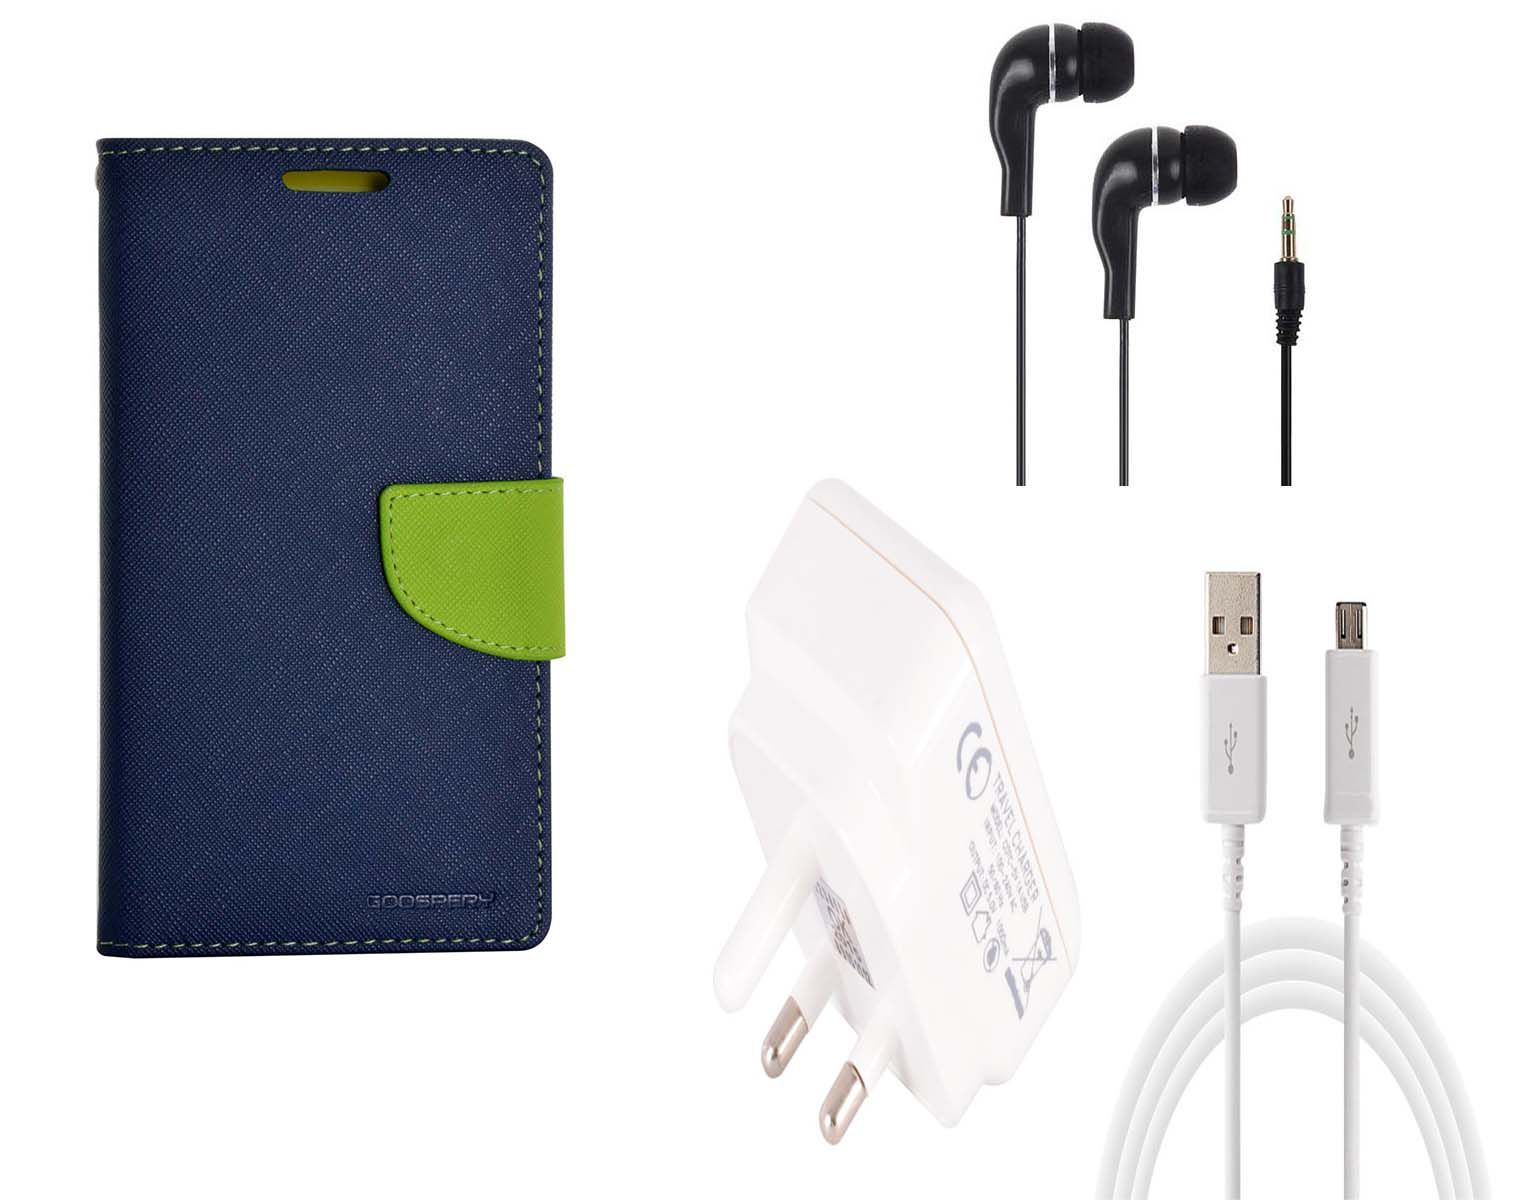 Cell Mates High Quality Leather Flip Cover For Xiaomi Redmi Note 3 Along With USB Charger & Earphone